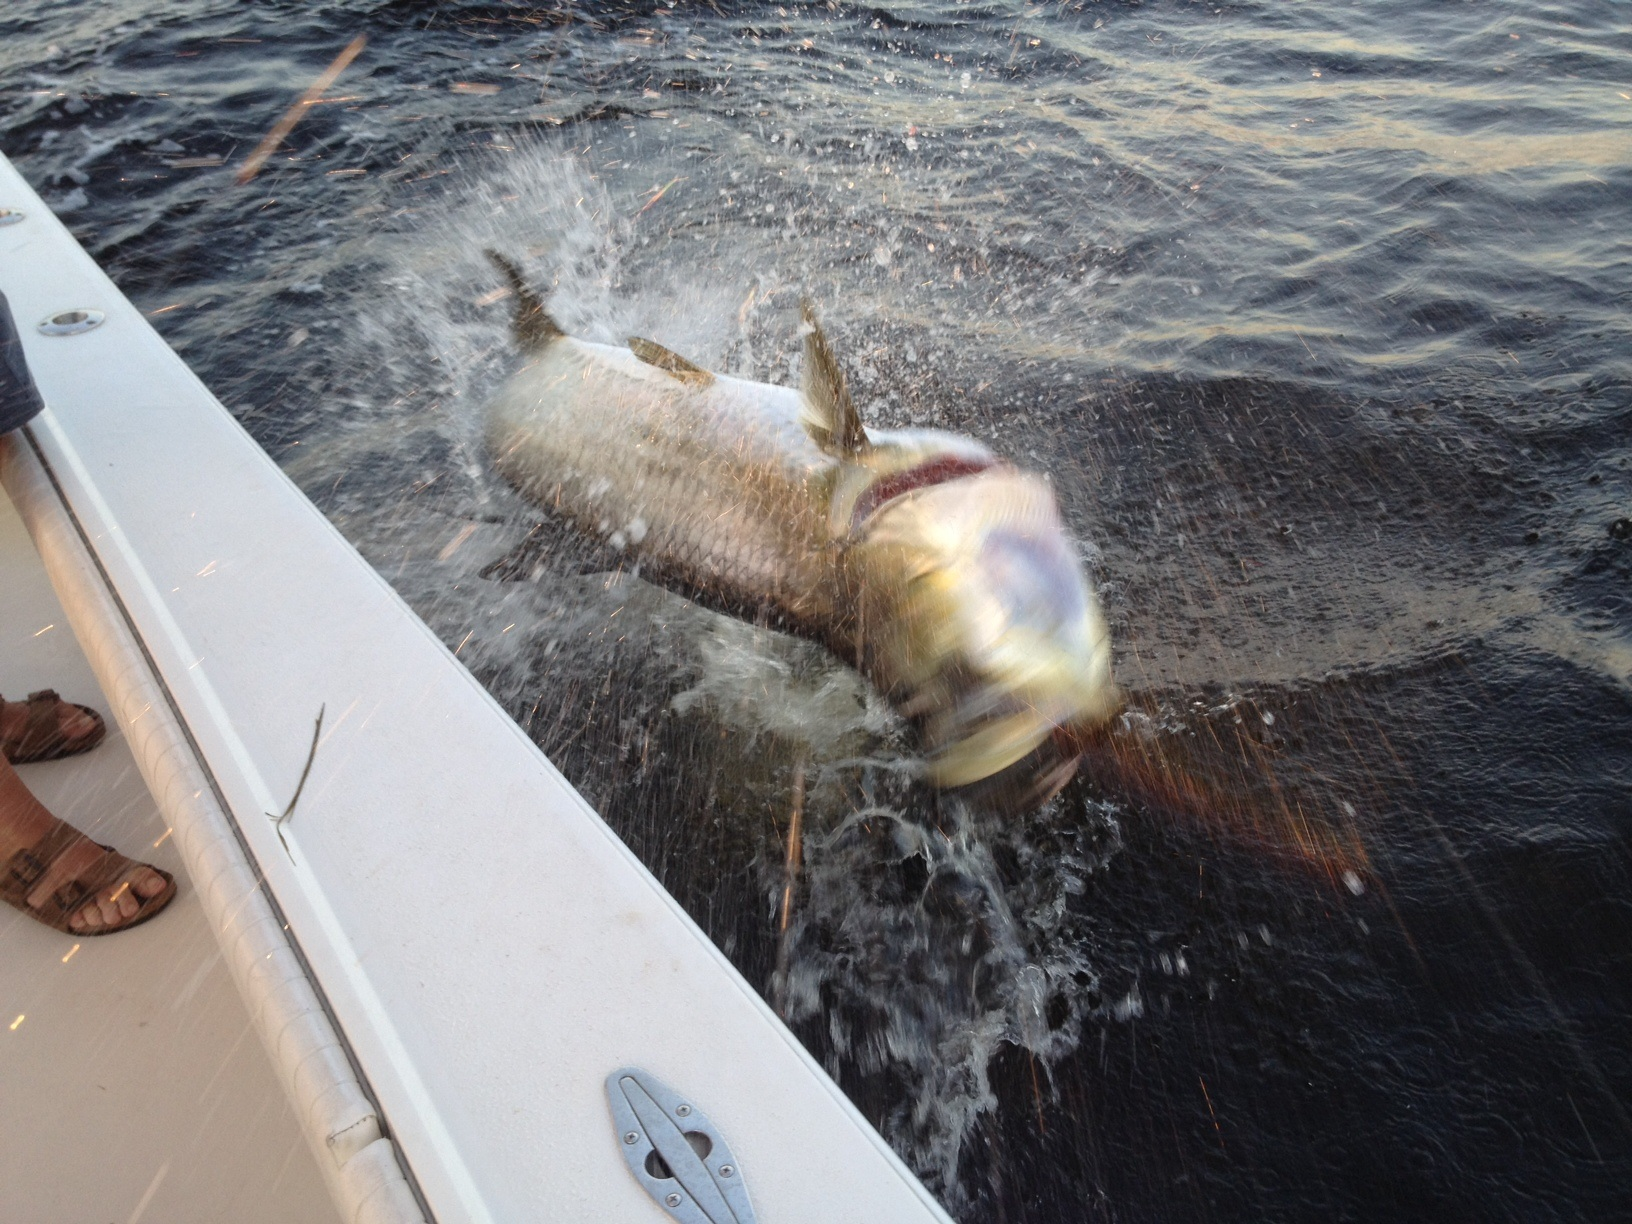 Wild tarpon jumping near the boat in Charlotte Harbor